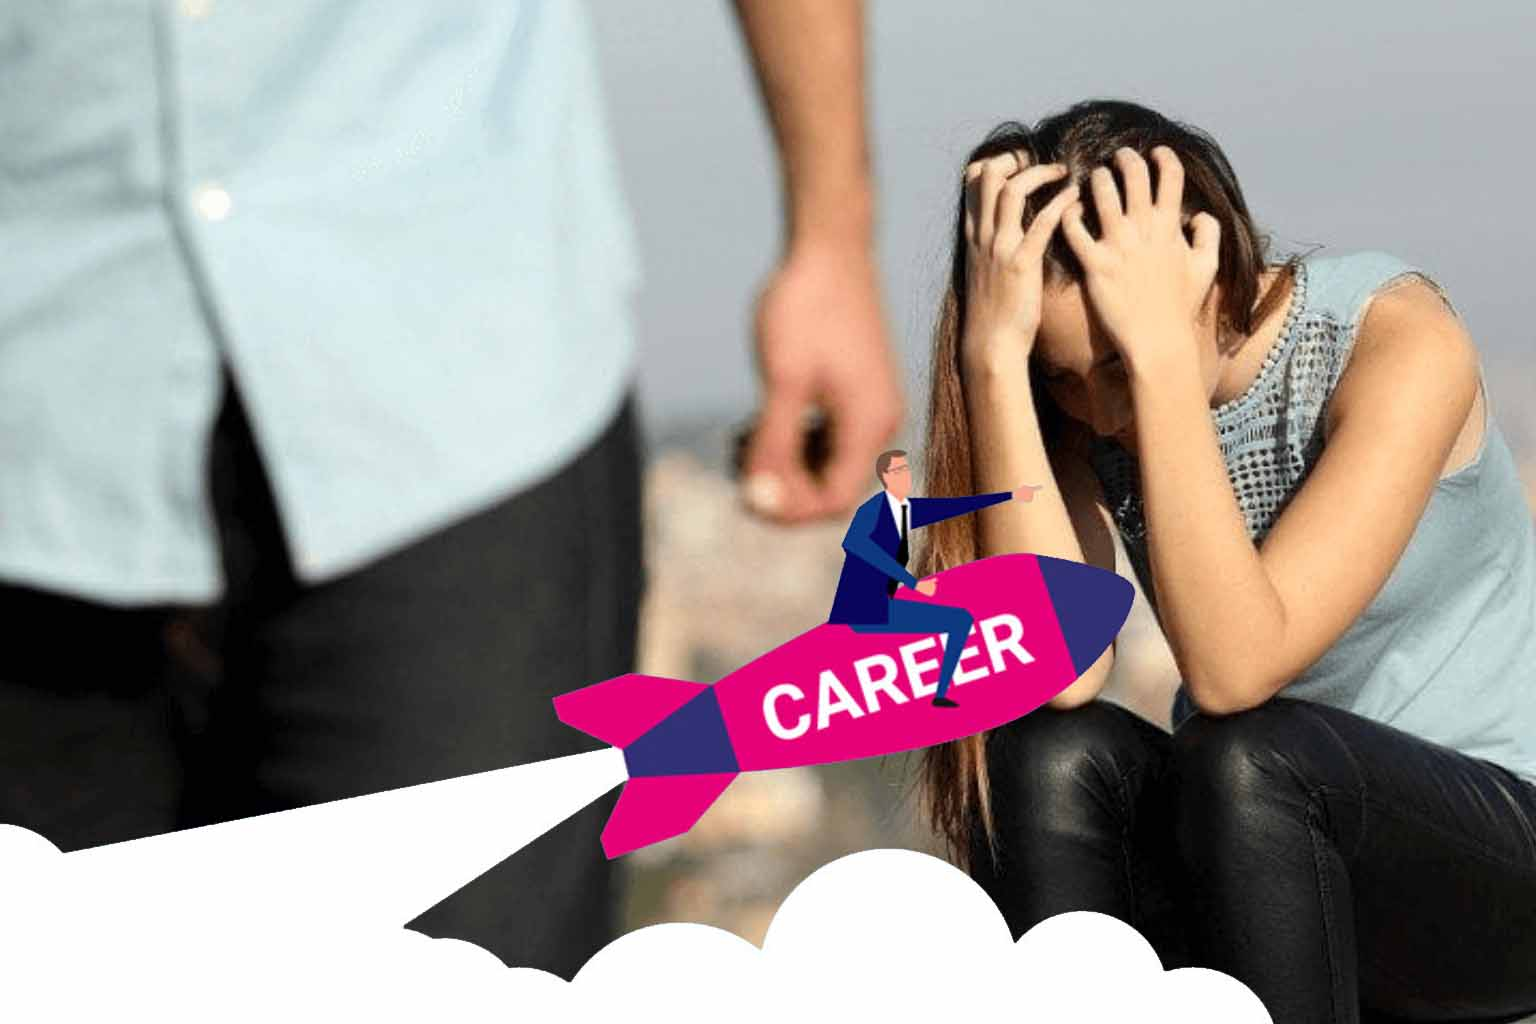 What is more important love or career?